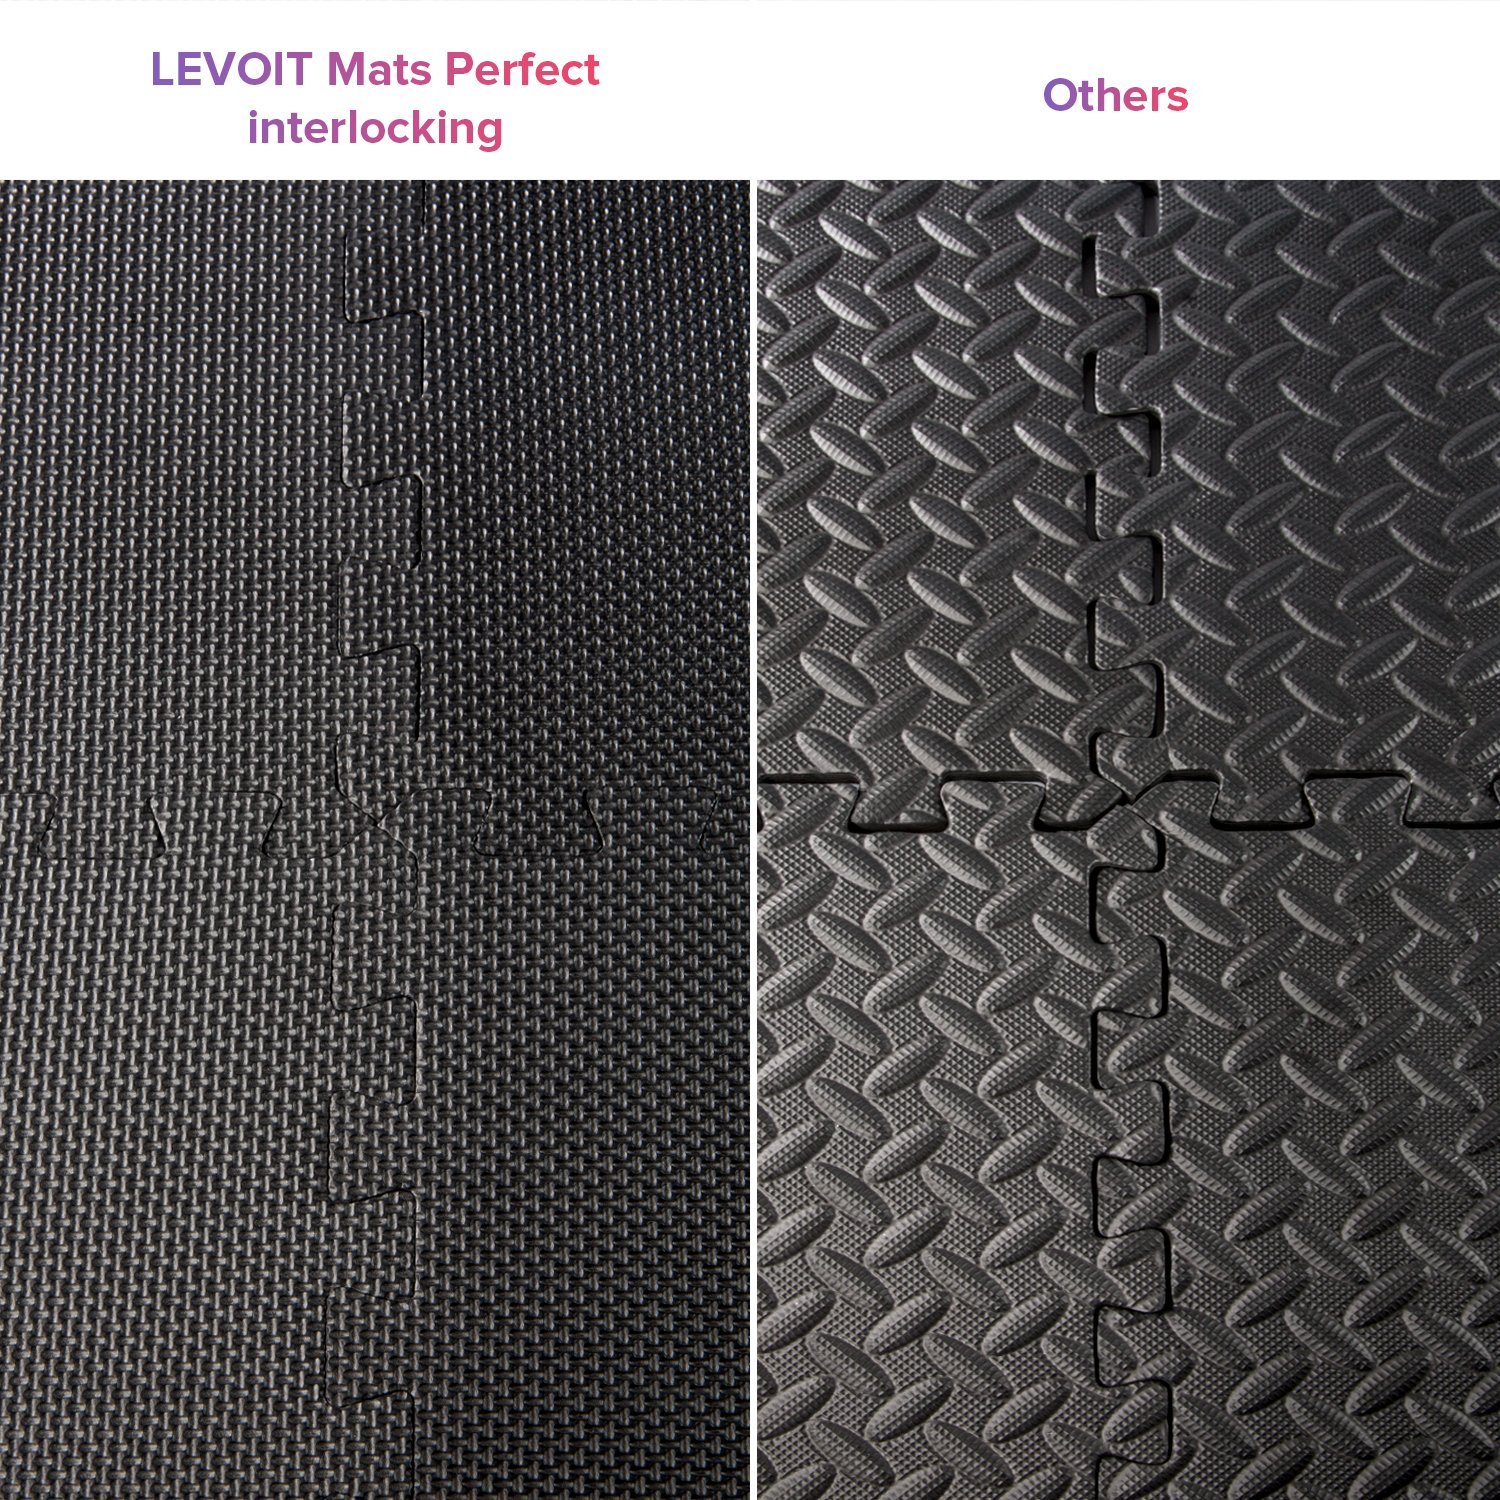 LEVOIT Puzzle Exercise Floor Mat for Gym Equipment, EVA Foam Interlocking Tiles, Protective Flooring for Working Out, Easy Assembly, 24 SQ FT (6 Tiles, 12 Borders), Black by LEVOIT (Image #3)